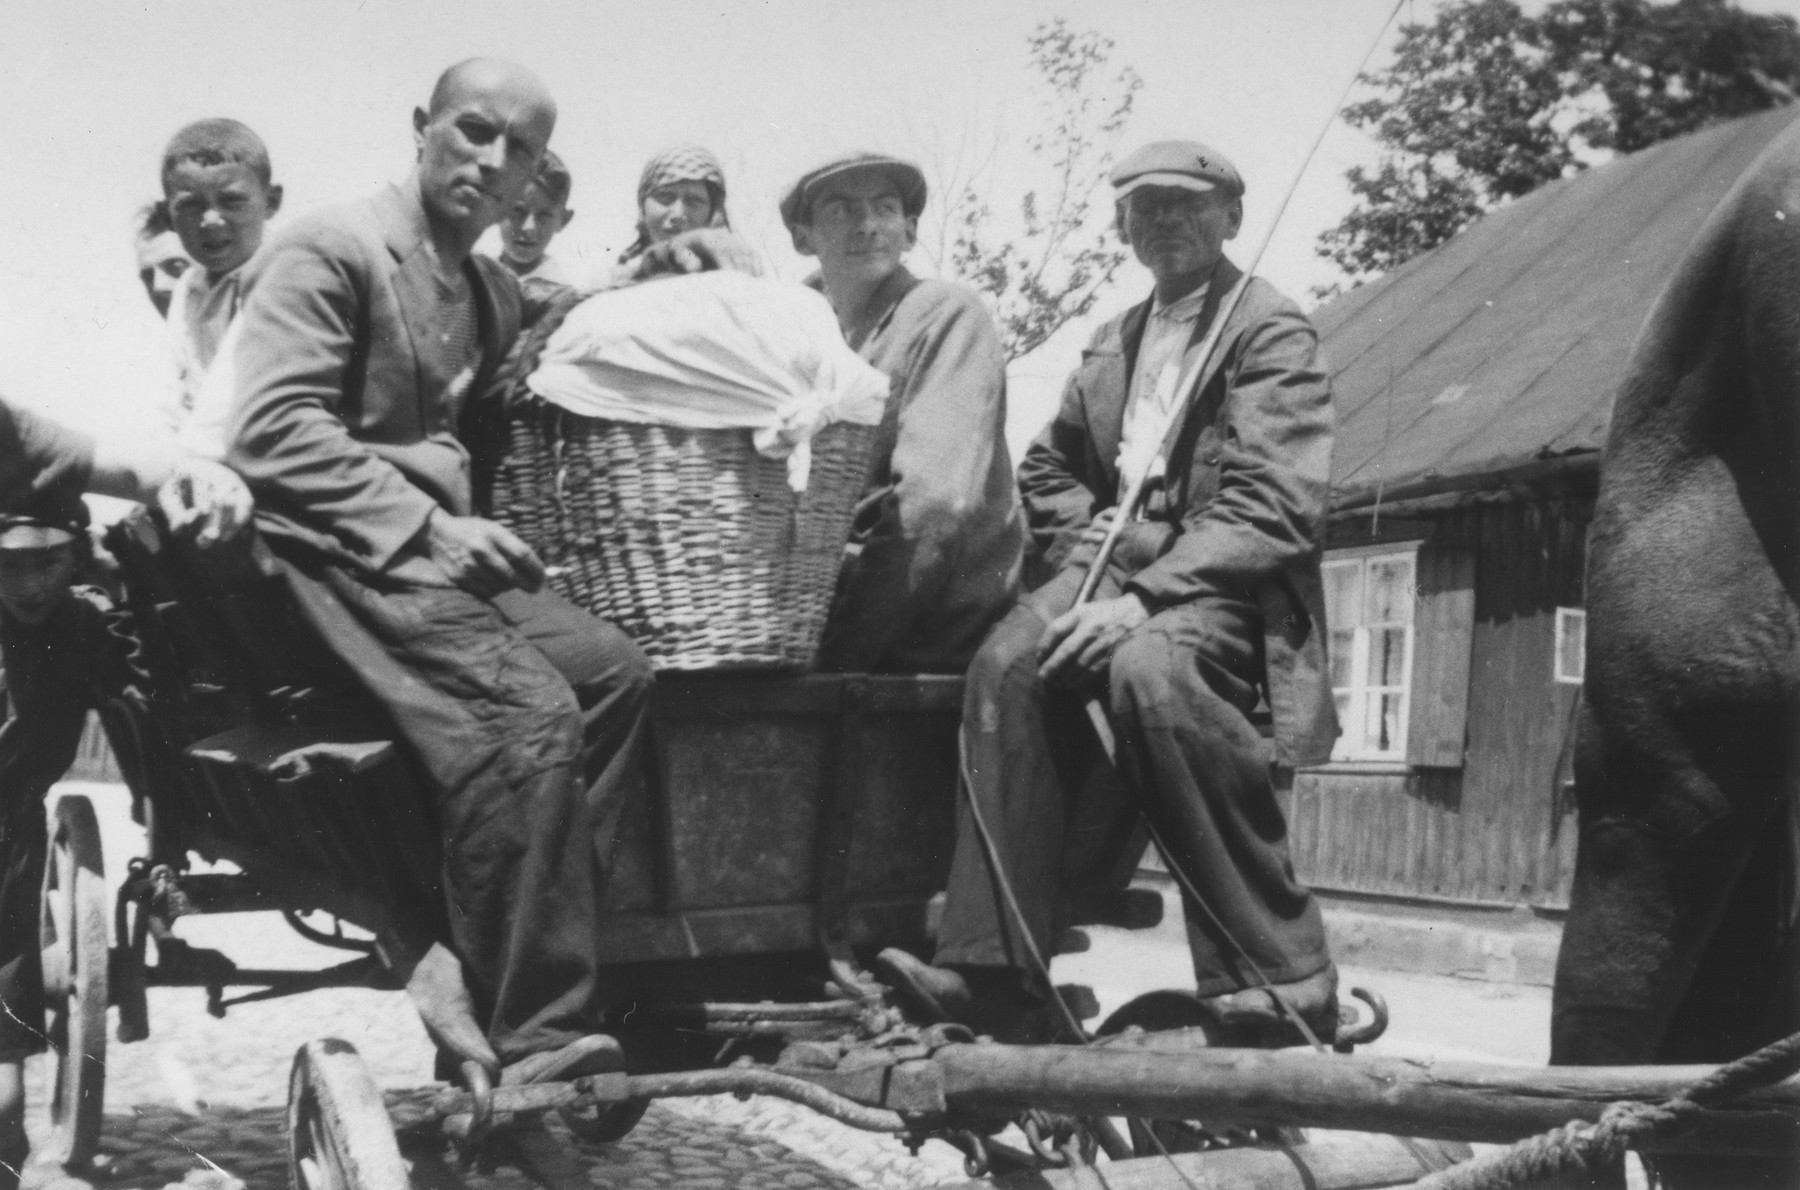 A group of Jews rides on the back of a horse-drawn wagon in Piotrkow Trybunalski, Poland.  The group is on their way to a neighboring town where the man with the basket will sell his wares.  Among those pictured are Reuven Fish, Shaya Wolrajch, Hersh Lieb Wolrajch, Chiemic and Wolf.